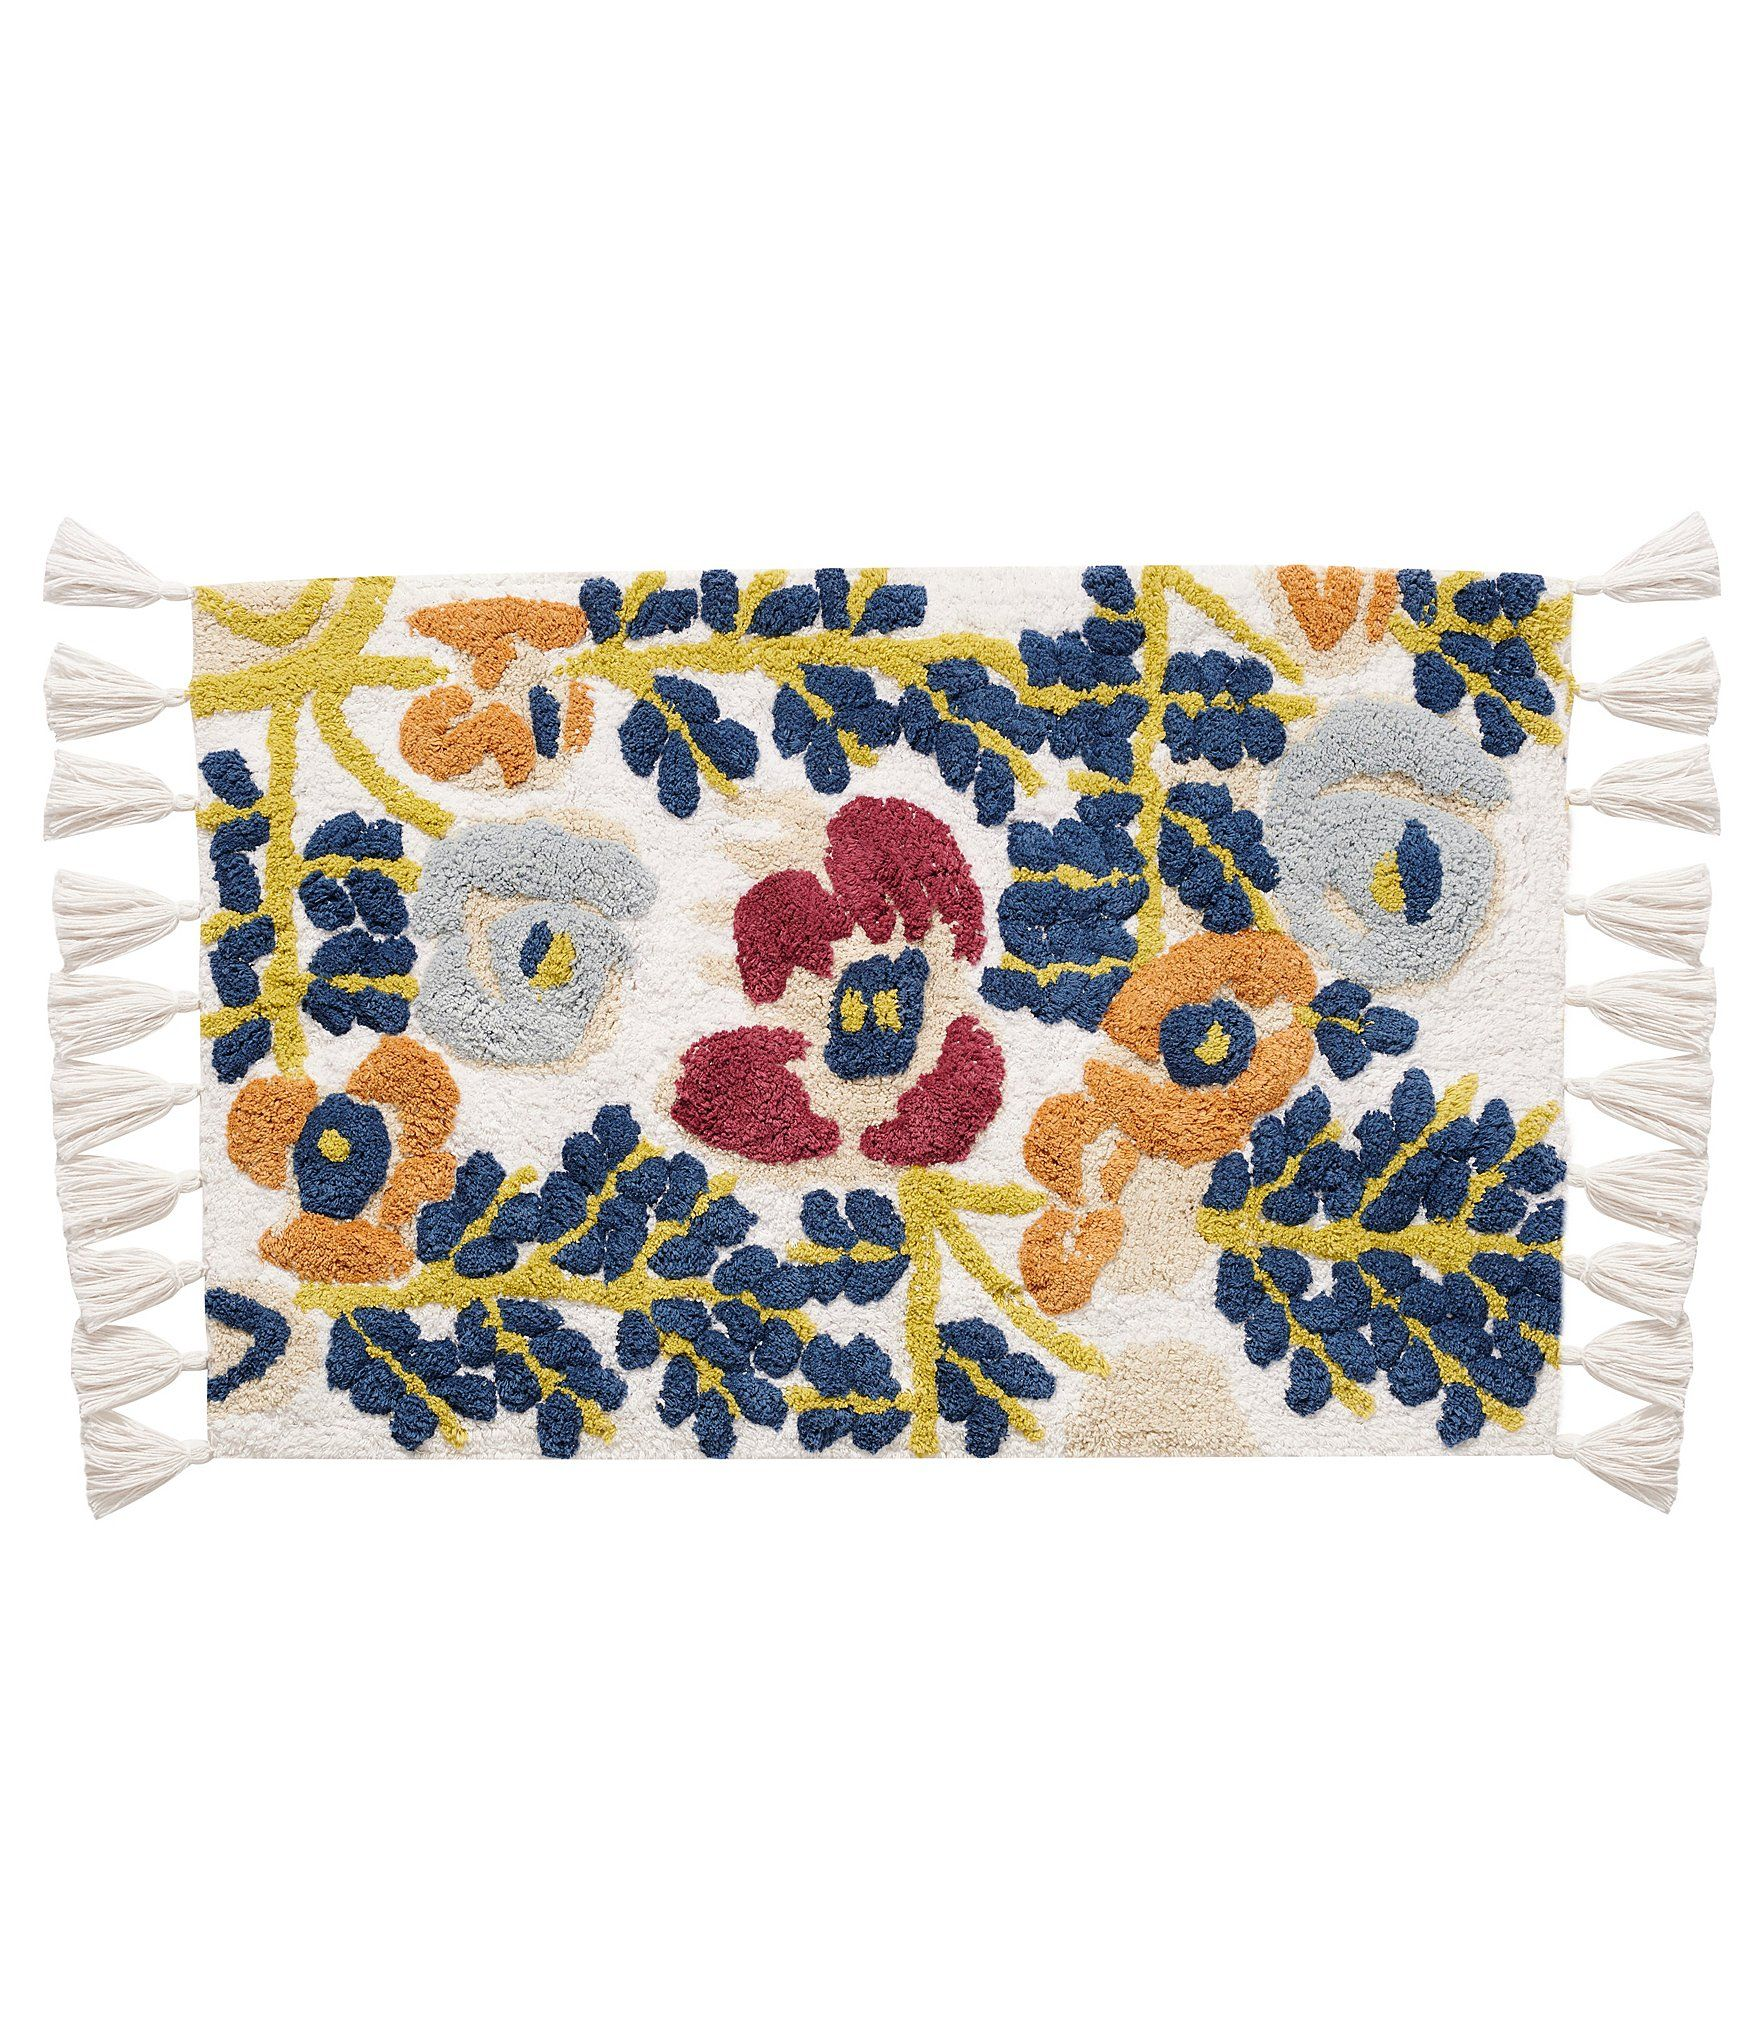 Pin By Jennifer Stanley On Essential Expressions Floral Bath Rugs Anthropologie Home Bath Rug [ 2040 x 1760 Pixel ]